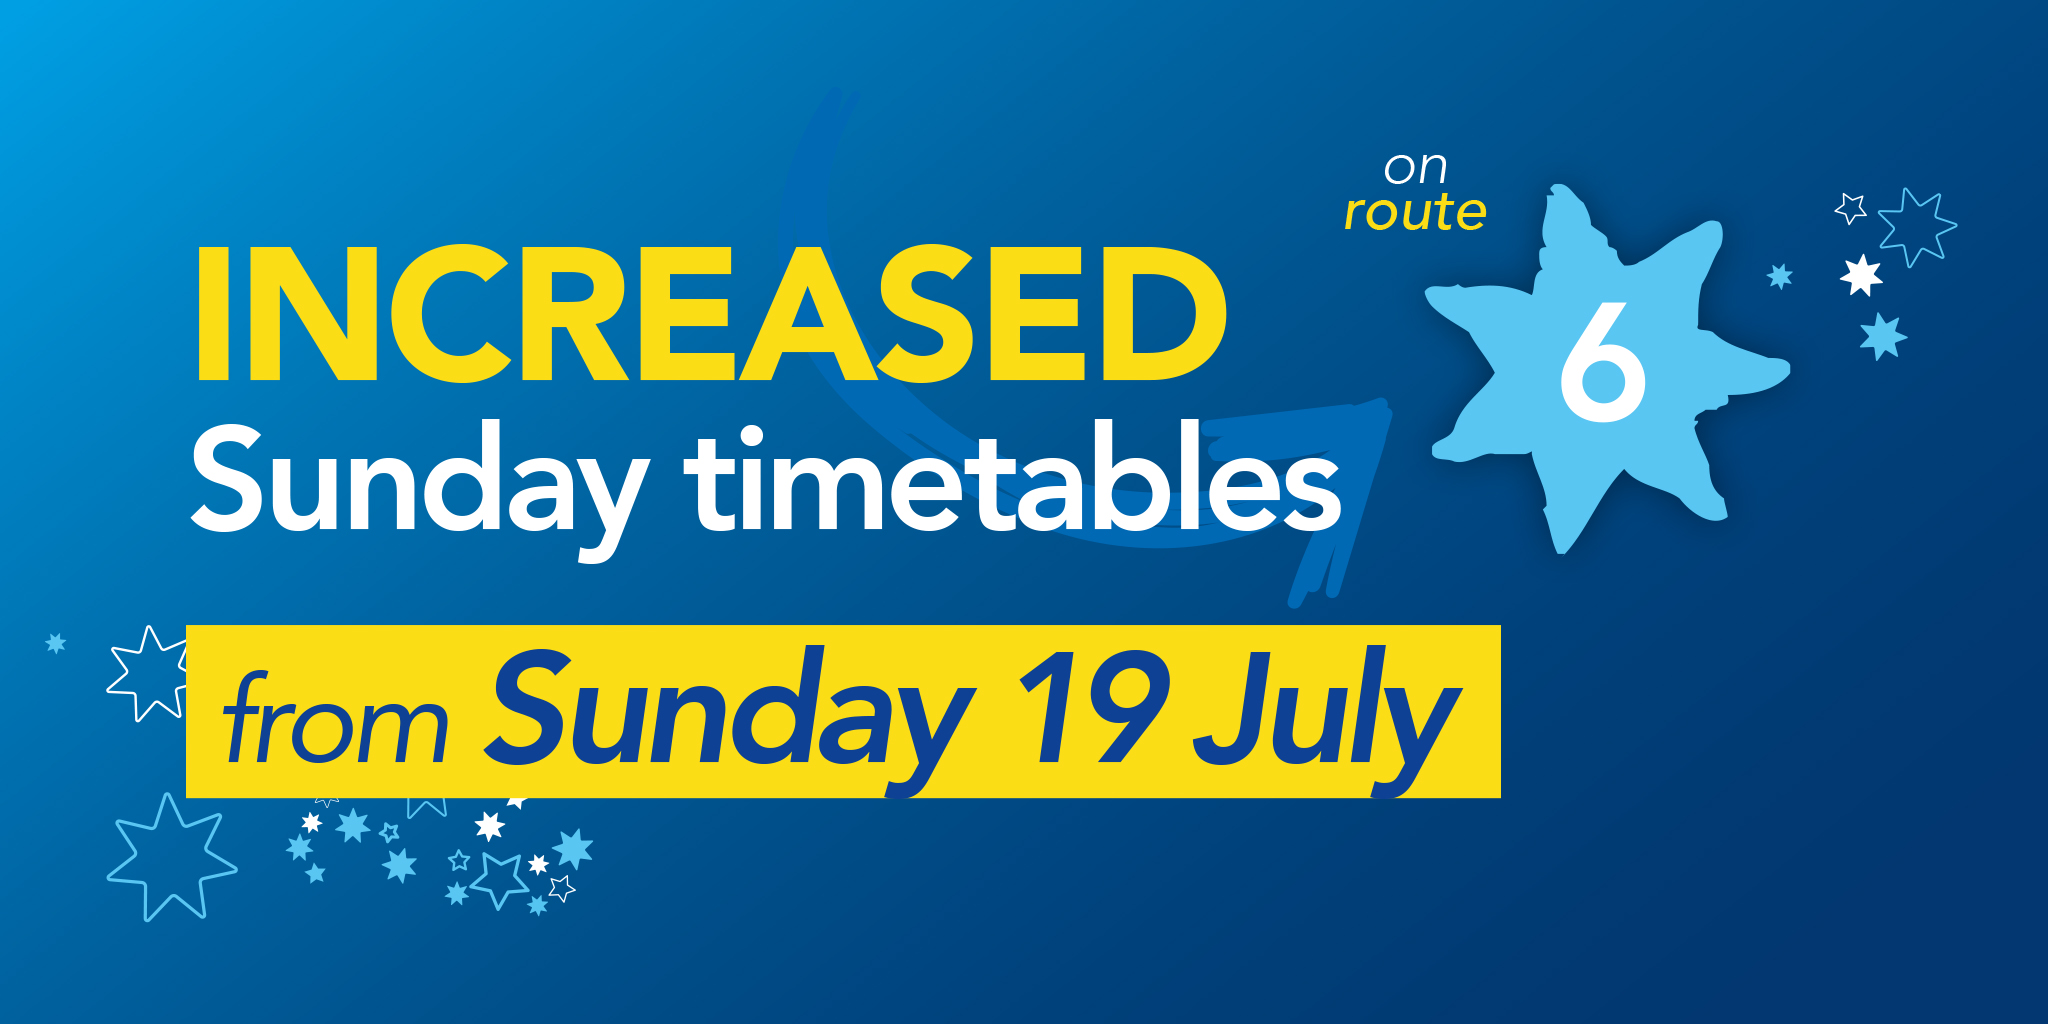 Image reading 'Increased Sunday timetables on Bluestar 6 from Sunday 19th July'